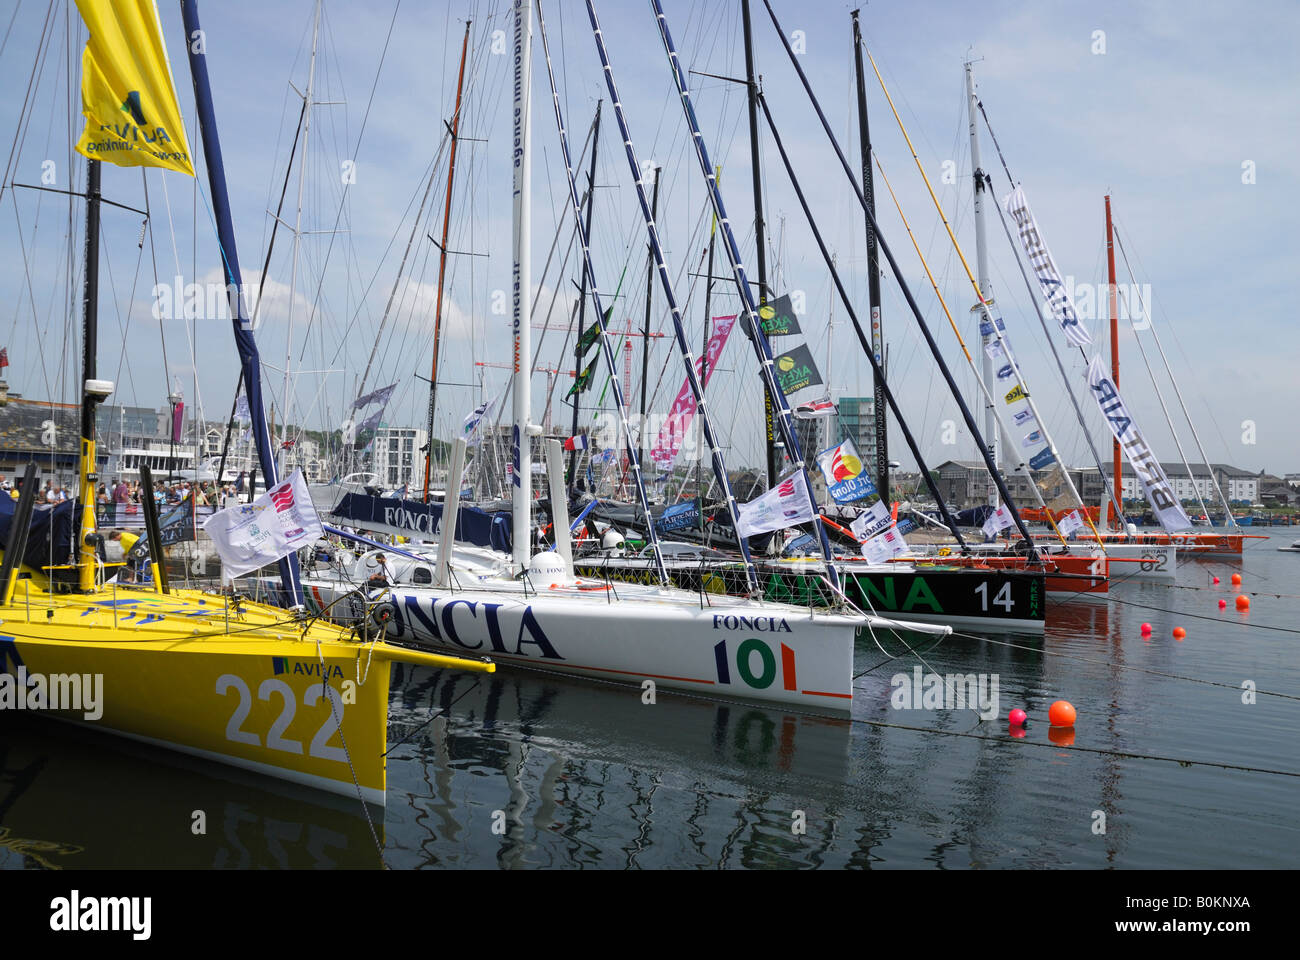 Racing Yachts moored at Sutton Harbour, Plymouth, UK, at the start of the 2008 Transat race Stock Photo